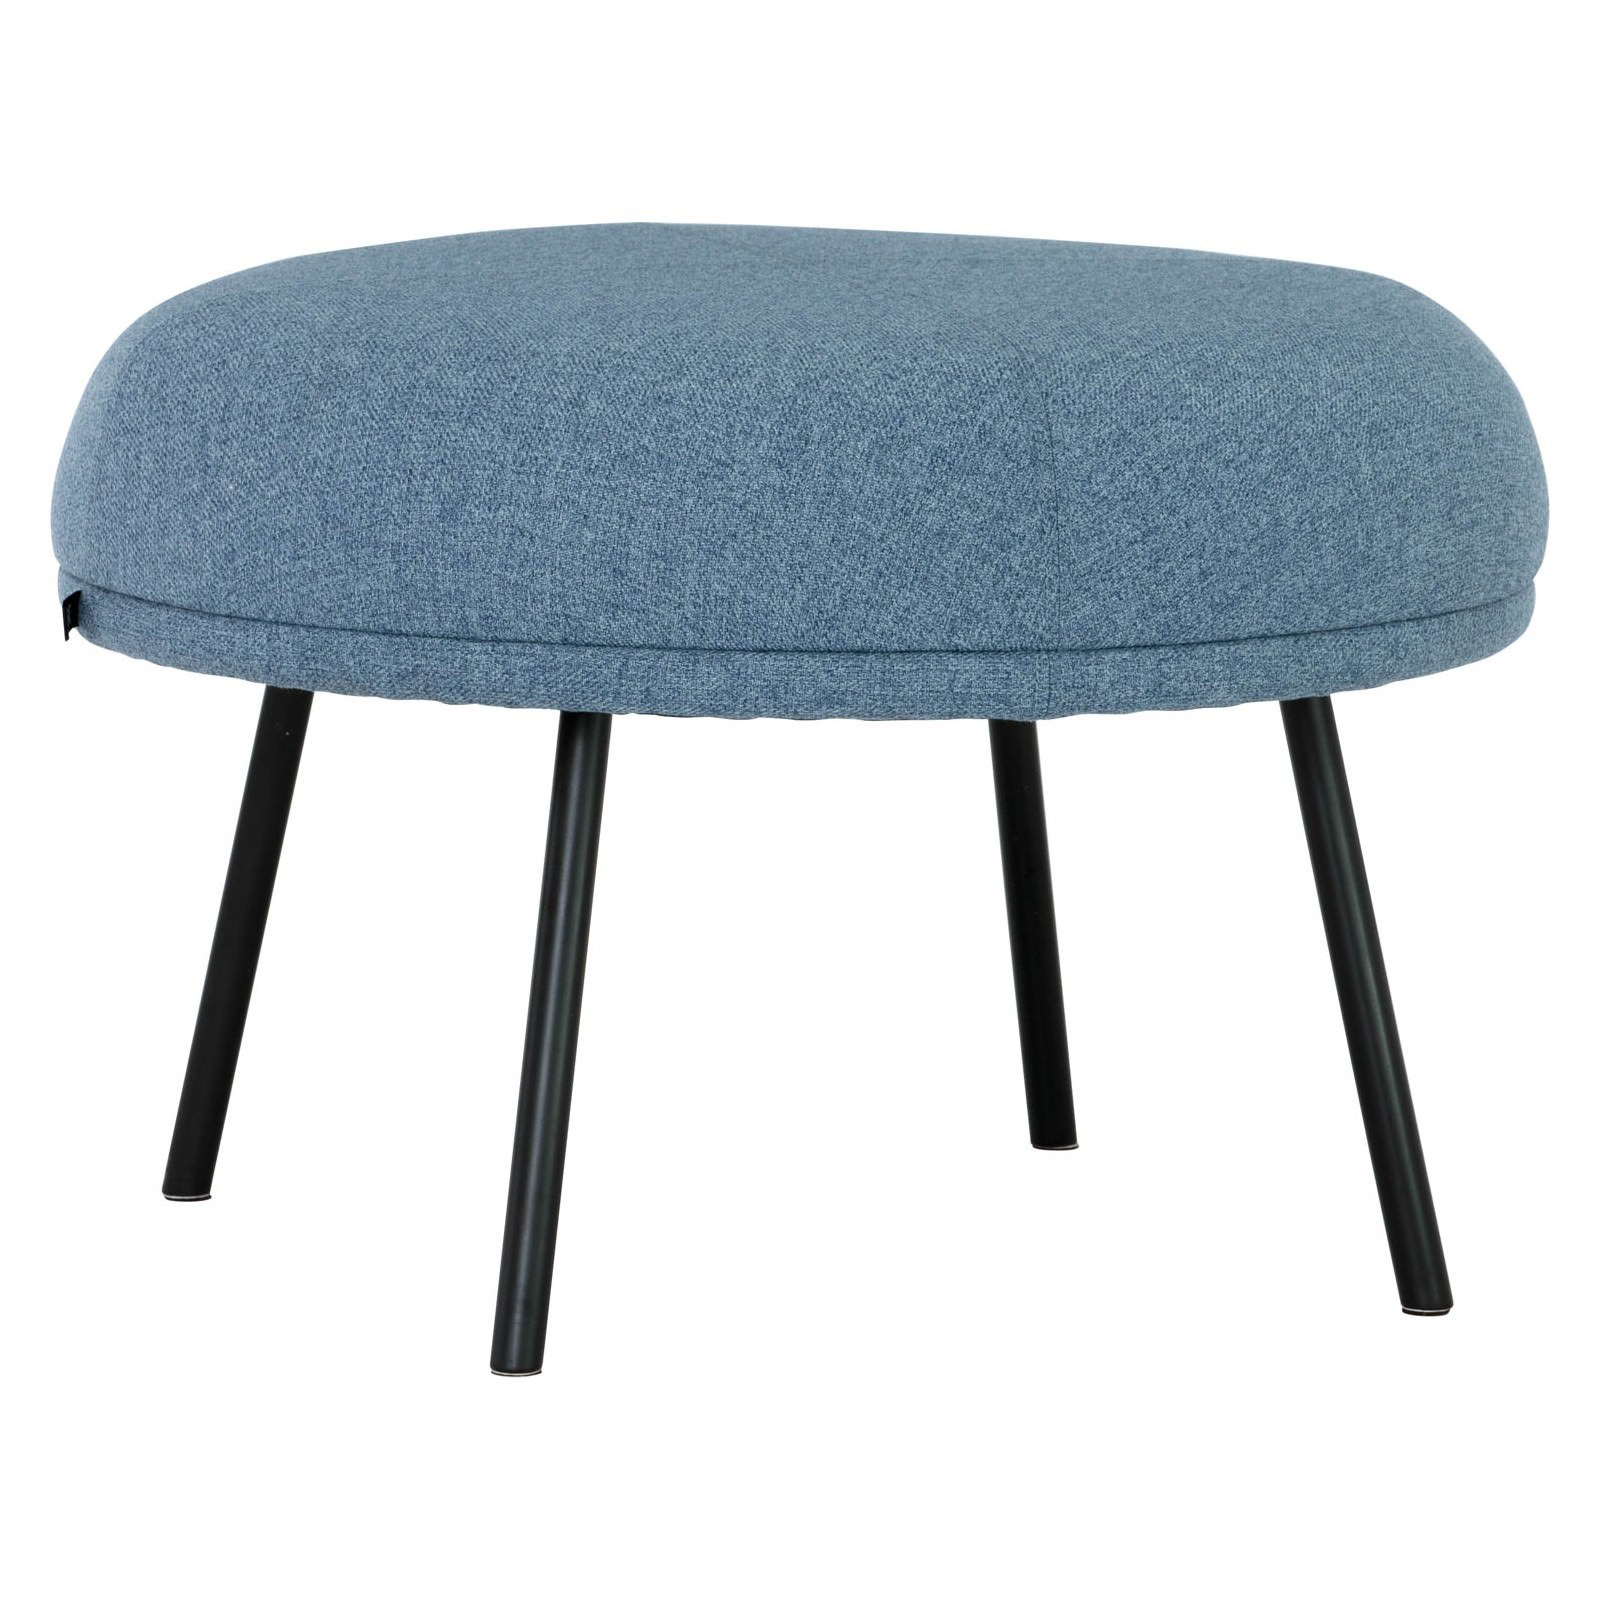 Justy Commercial Grade Fabric Round Footstool, Blue